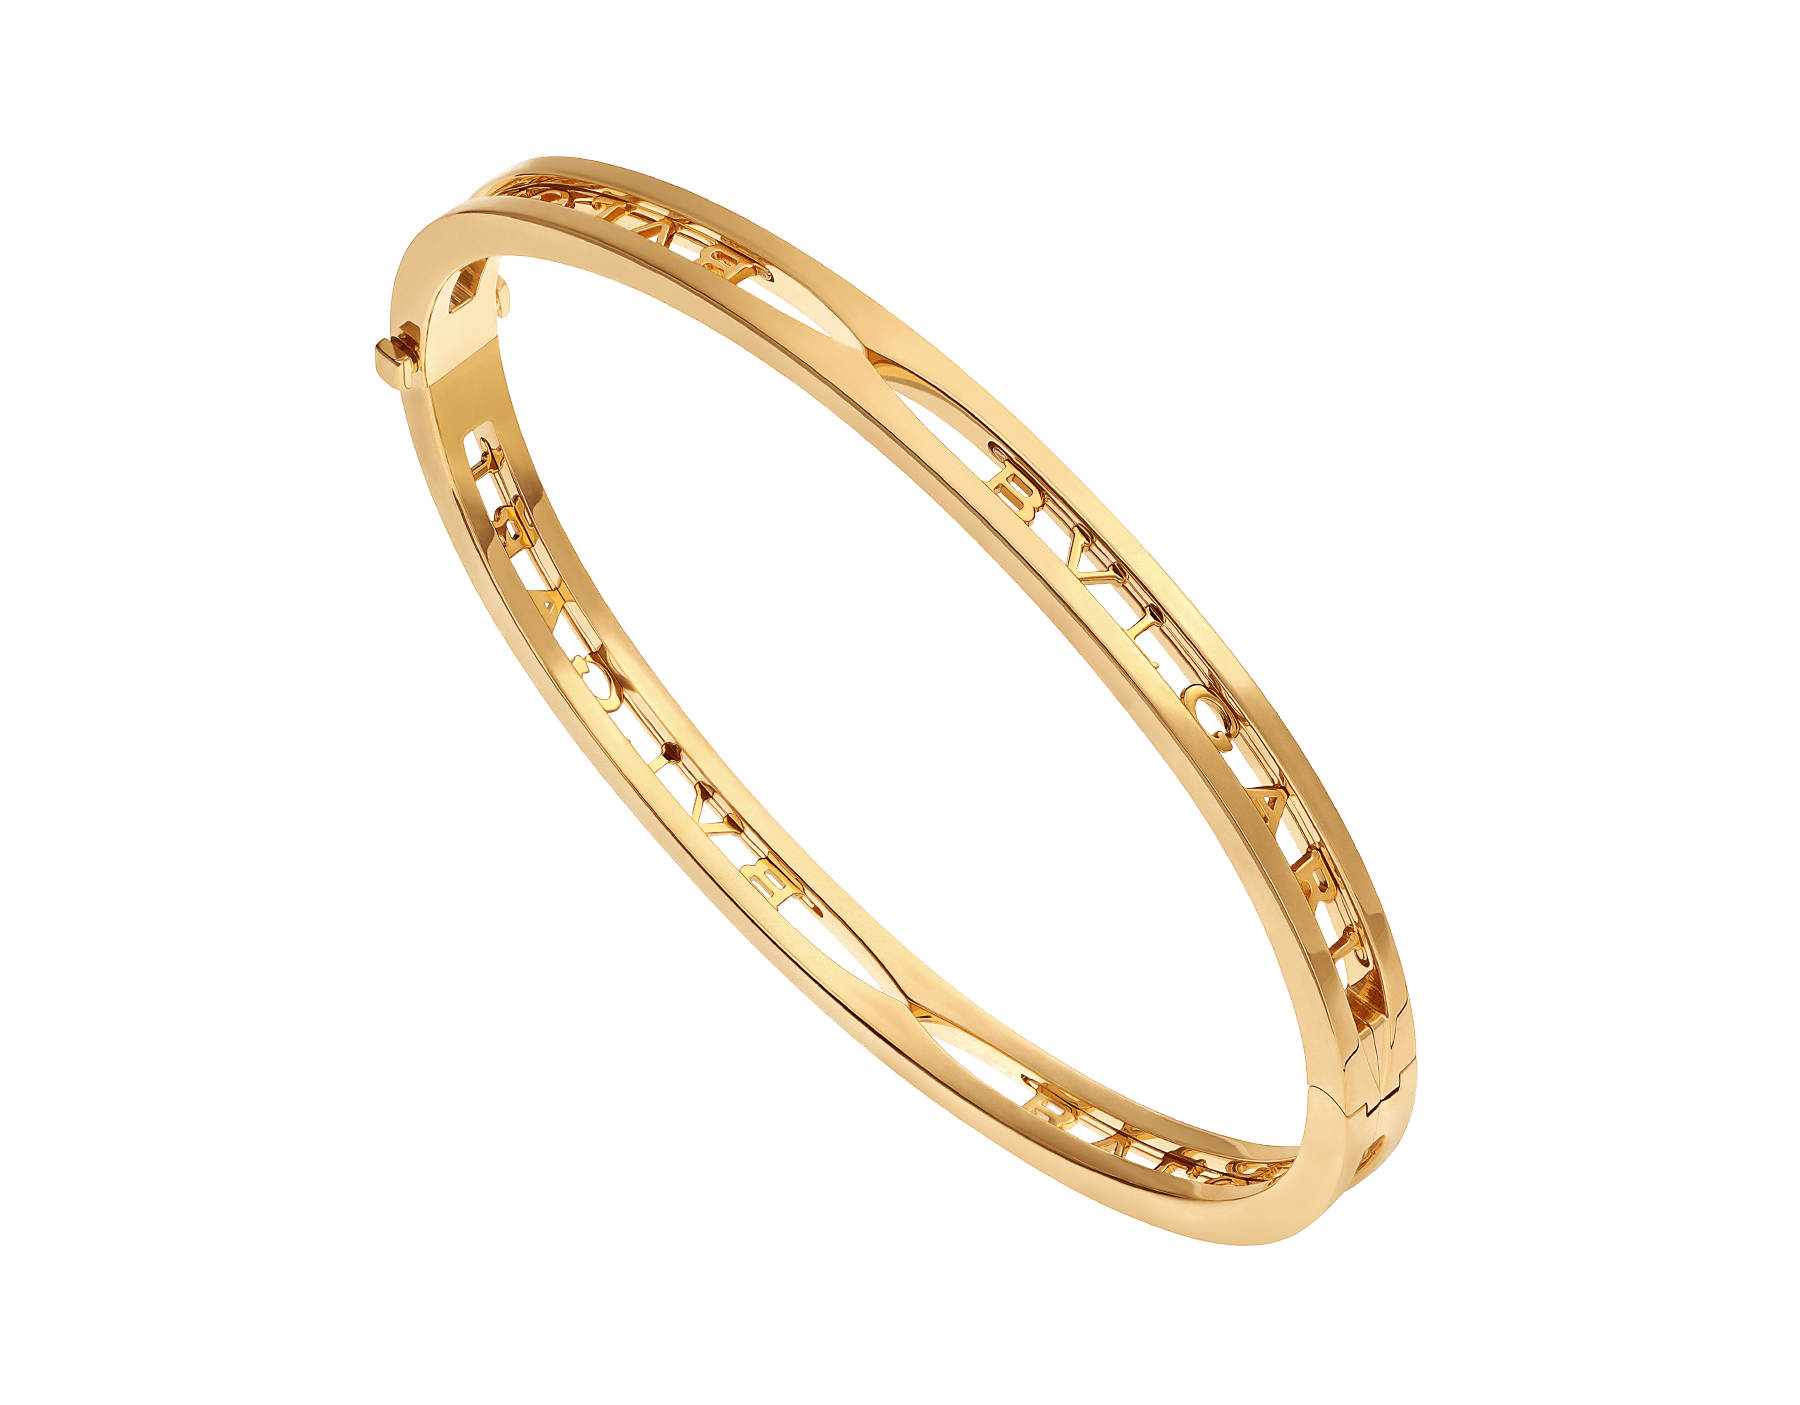 B.zero1 18 kt yellow gold bangle bracelet with BVLGARI logo on the spiral BR858724 image 1